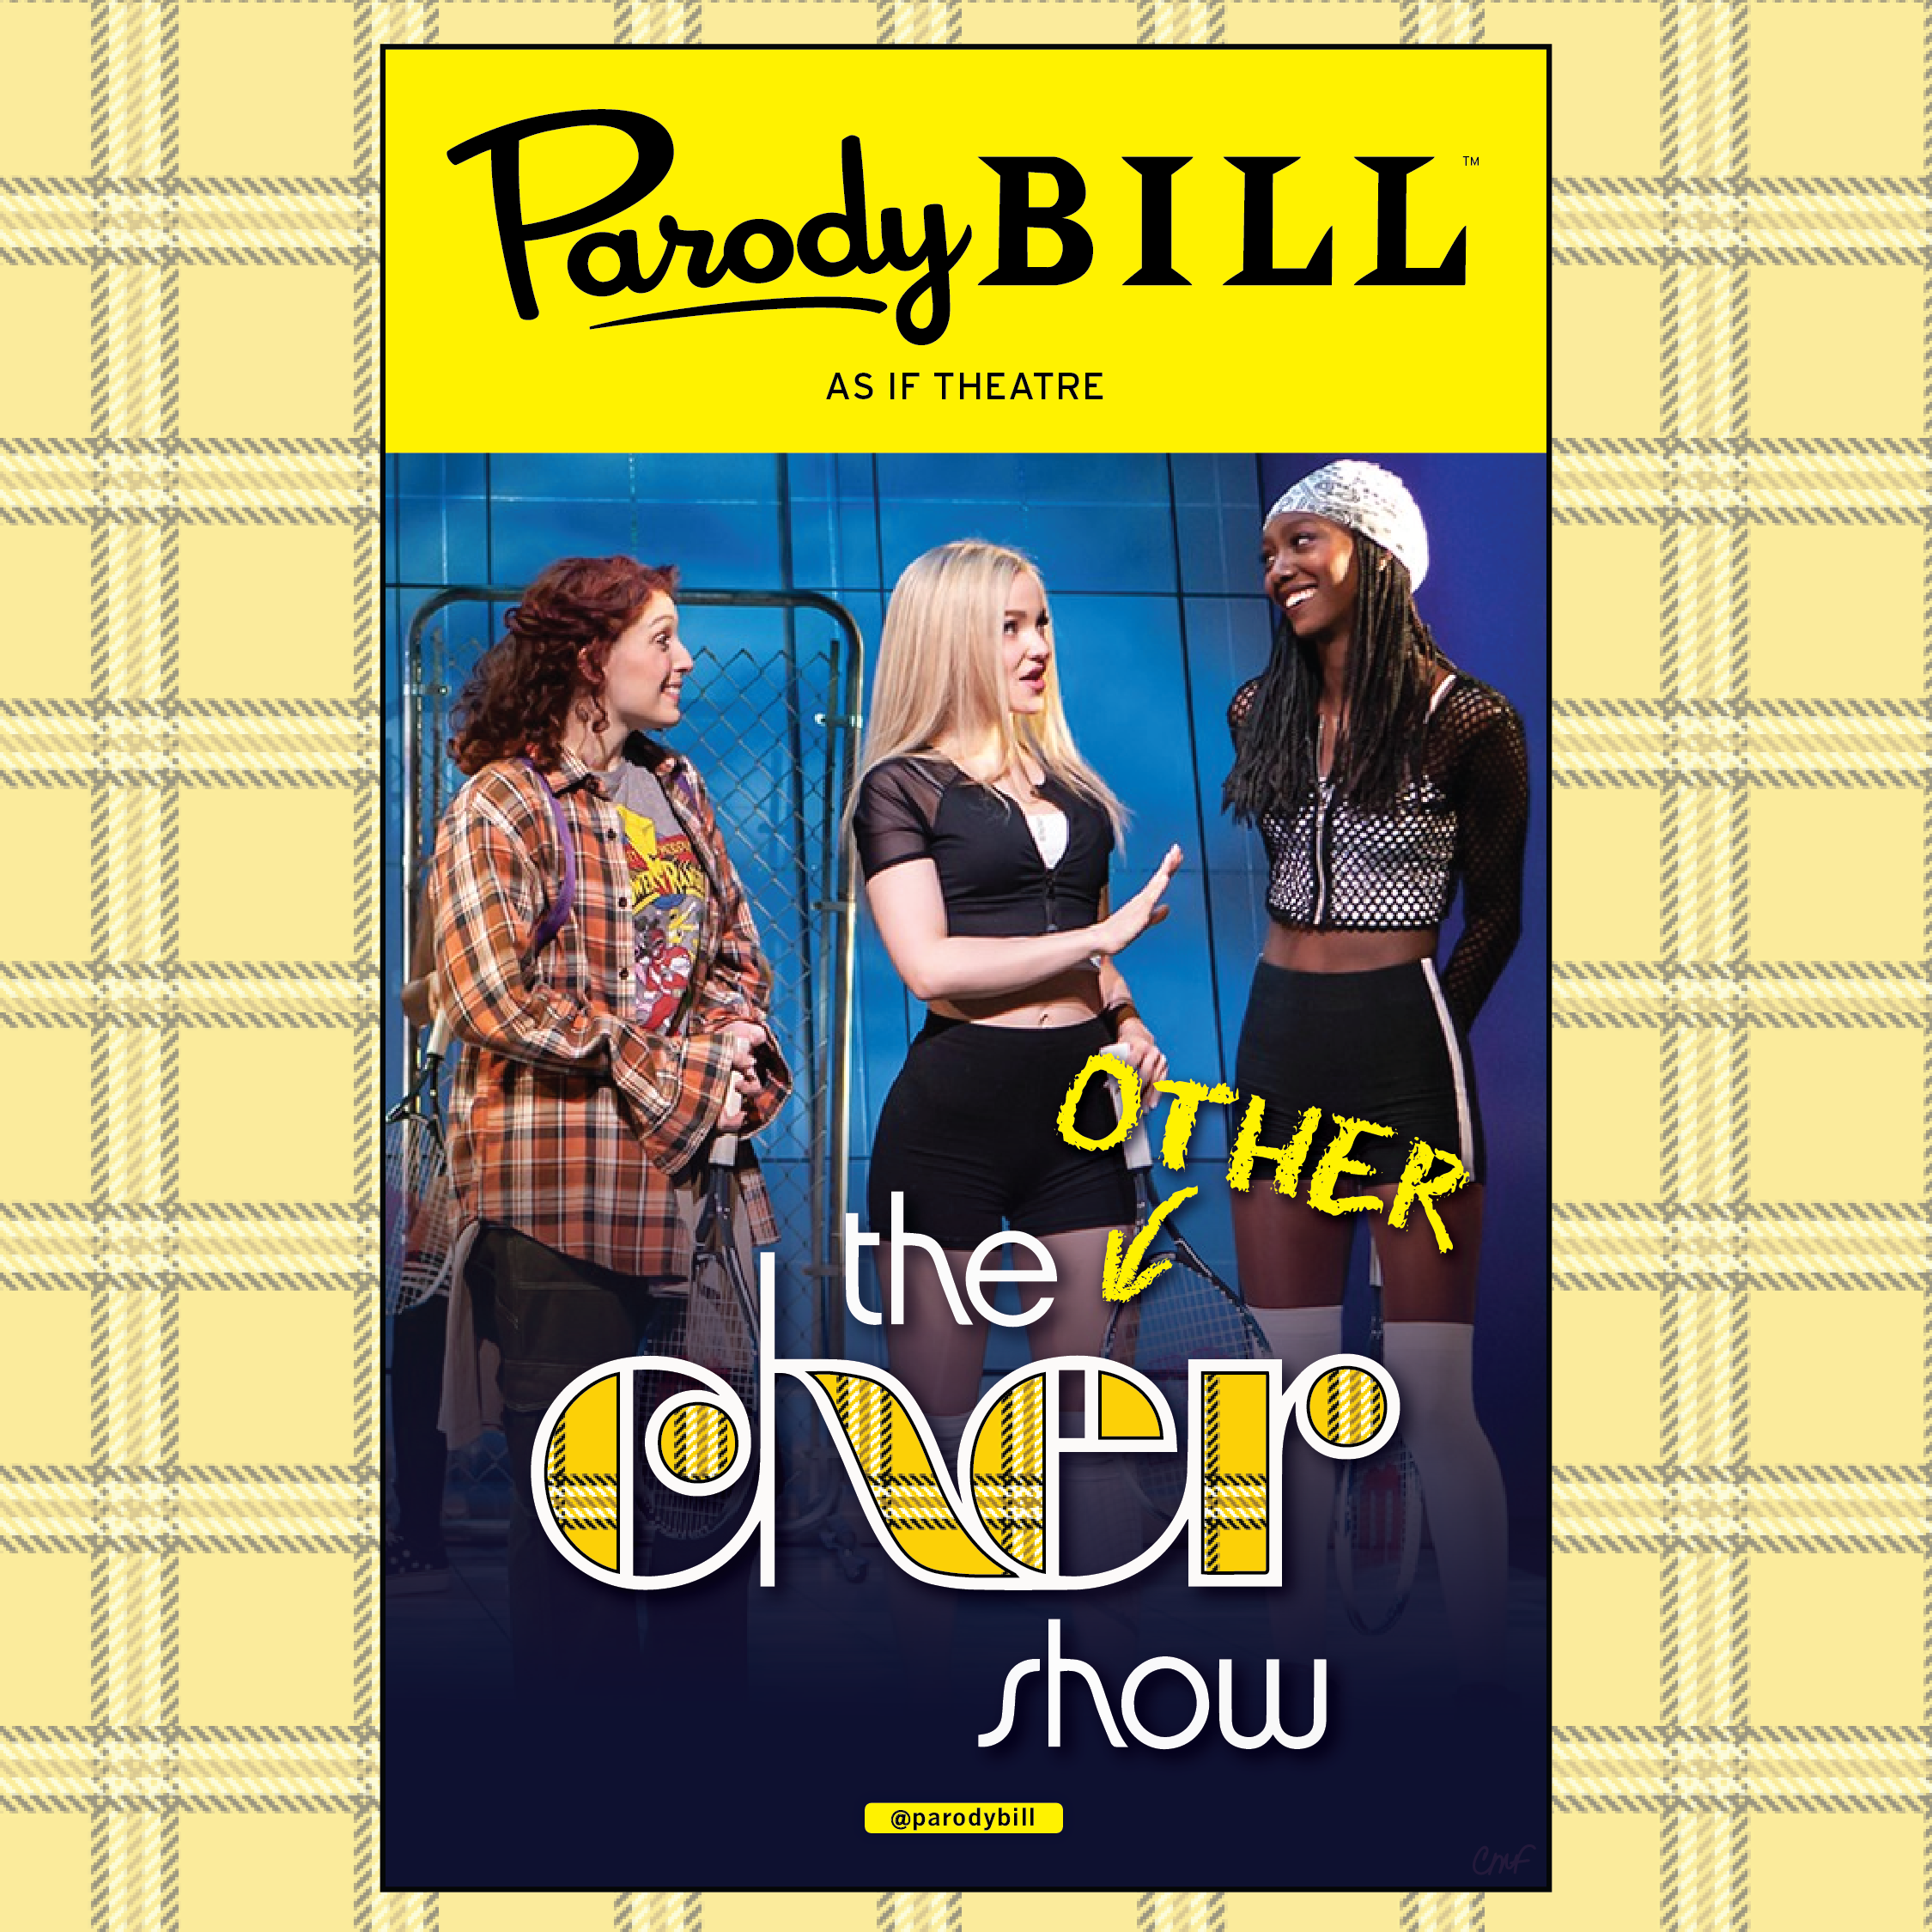 THE OTHER CHER SHOW